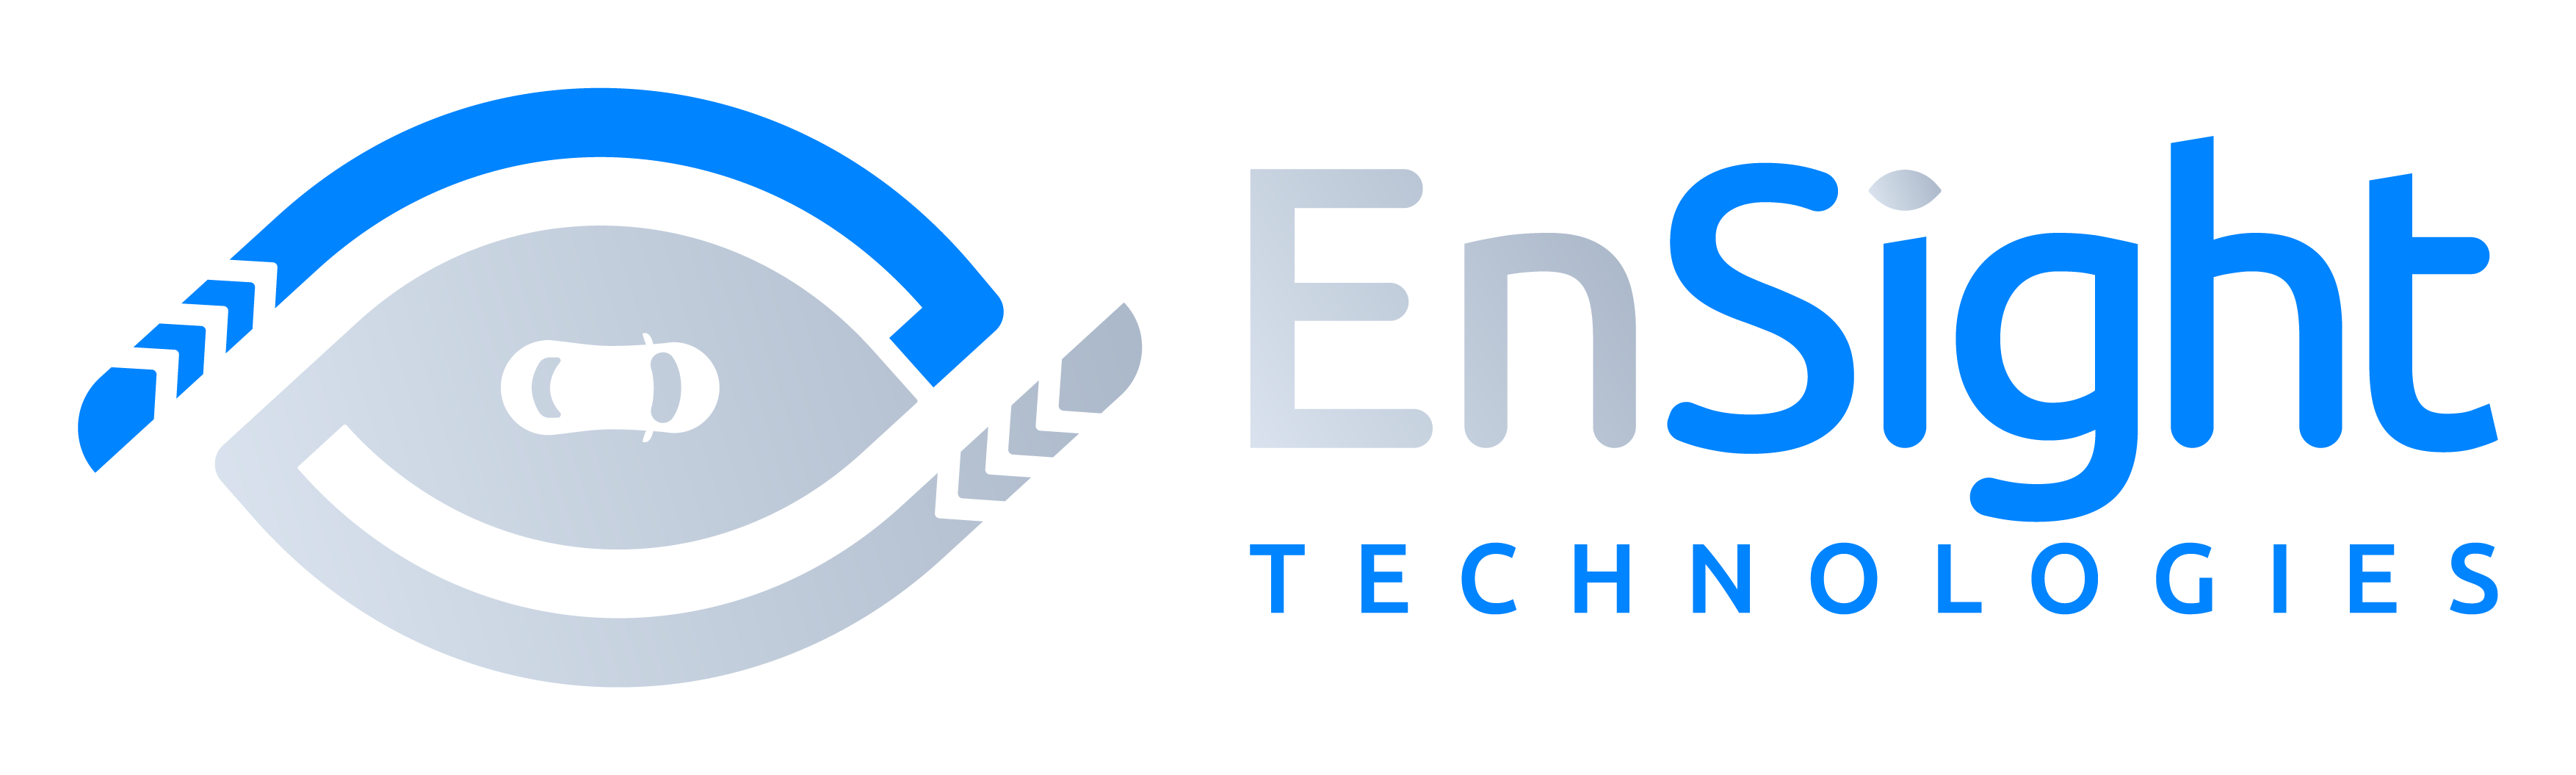 EnSight Technologies logo